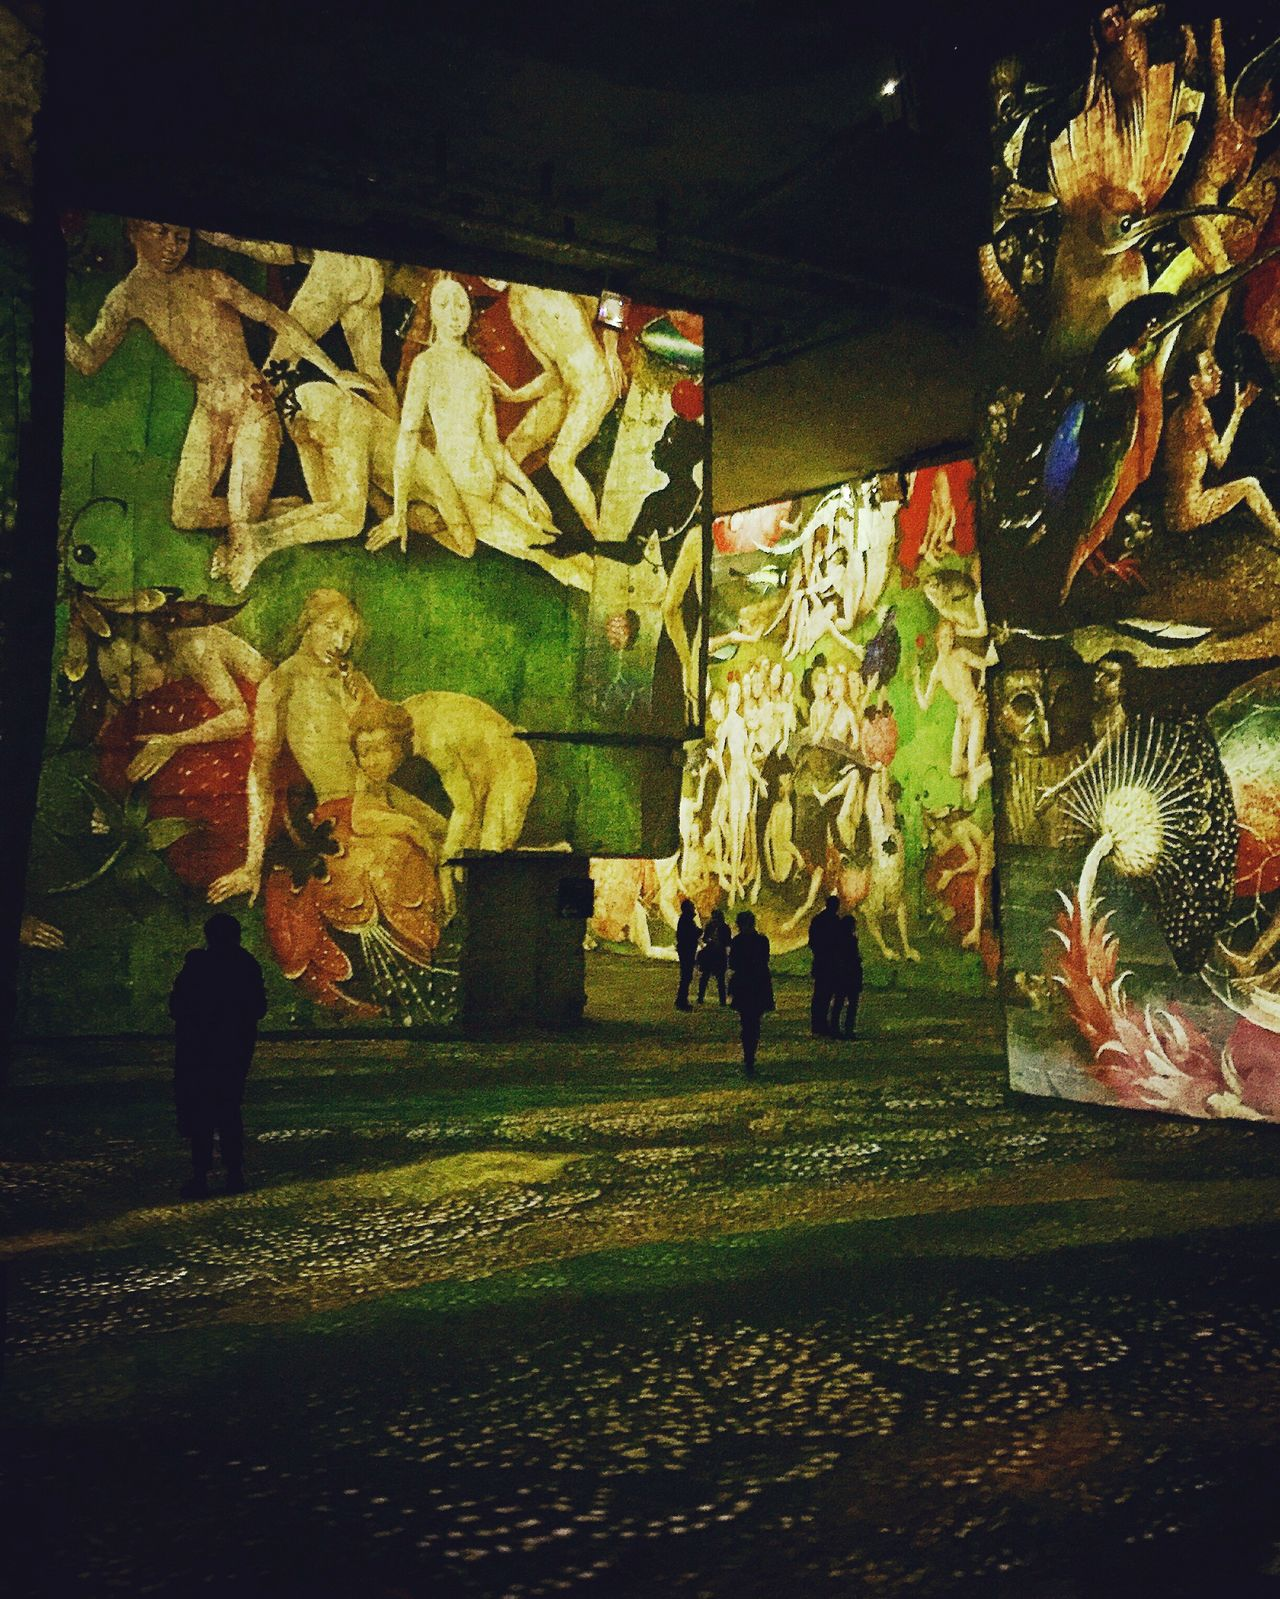 Carrieres de lumière Architecture ArtWork Arts Culture And Entertainment Art, Drawing, Creativity Artist Artistic Arcitecturephotography Bosch Baroque Architecture Lumix Illuminated Spectacular Lumixgx8 Photooftheday